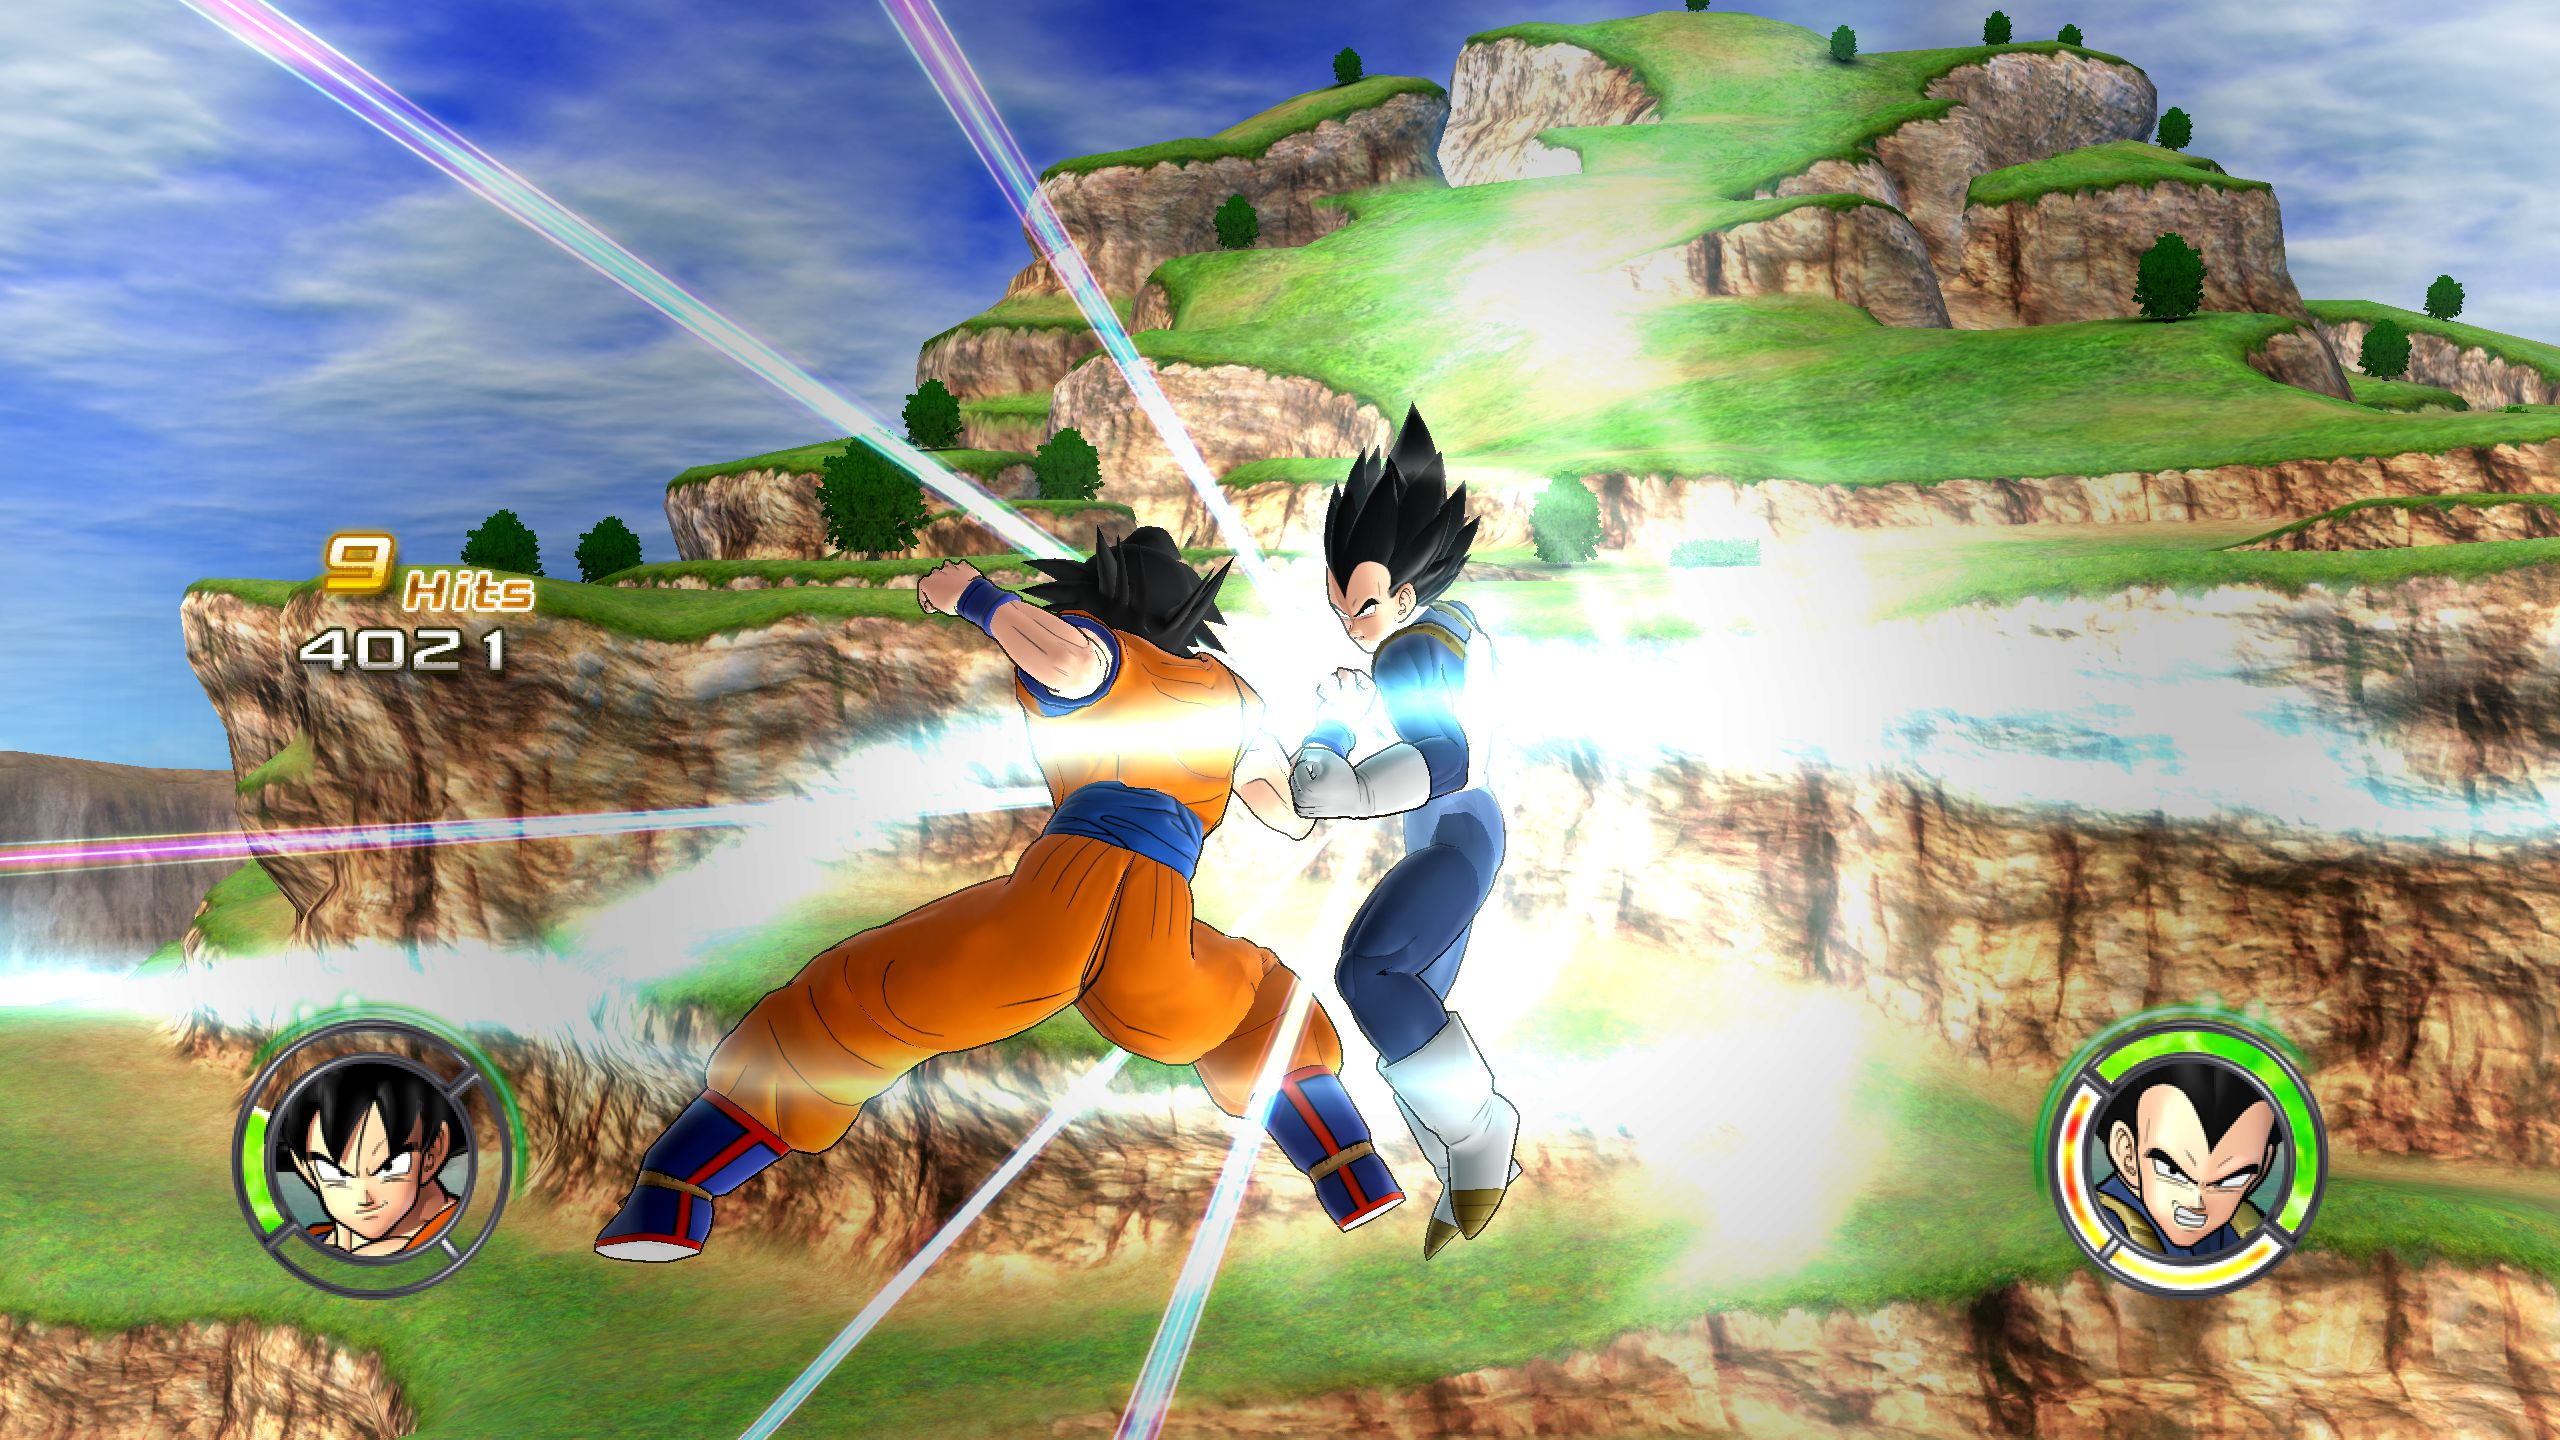 Image goku vs vegeta ruin area 16g dragon ball wiki goku vs vegeta ruin area 16g voltagebd Gallery